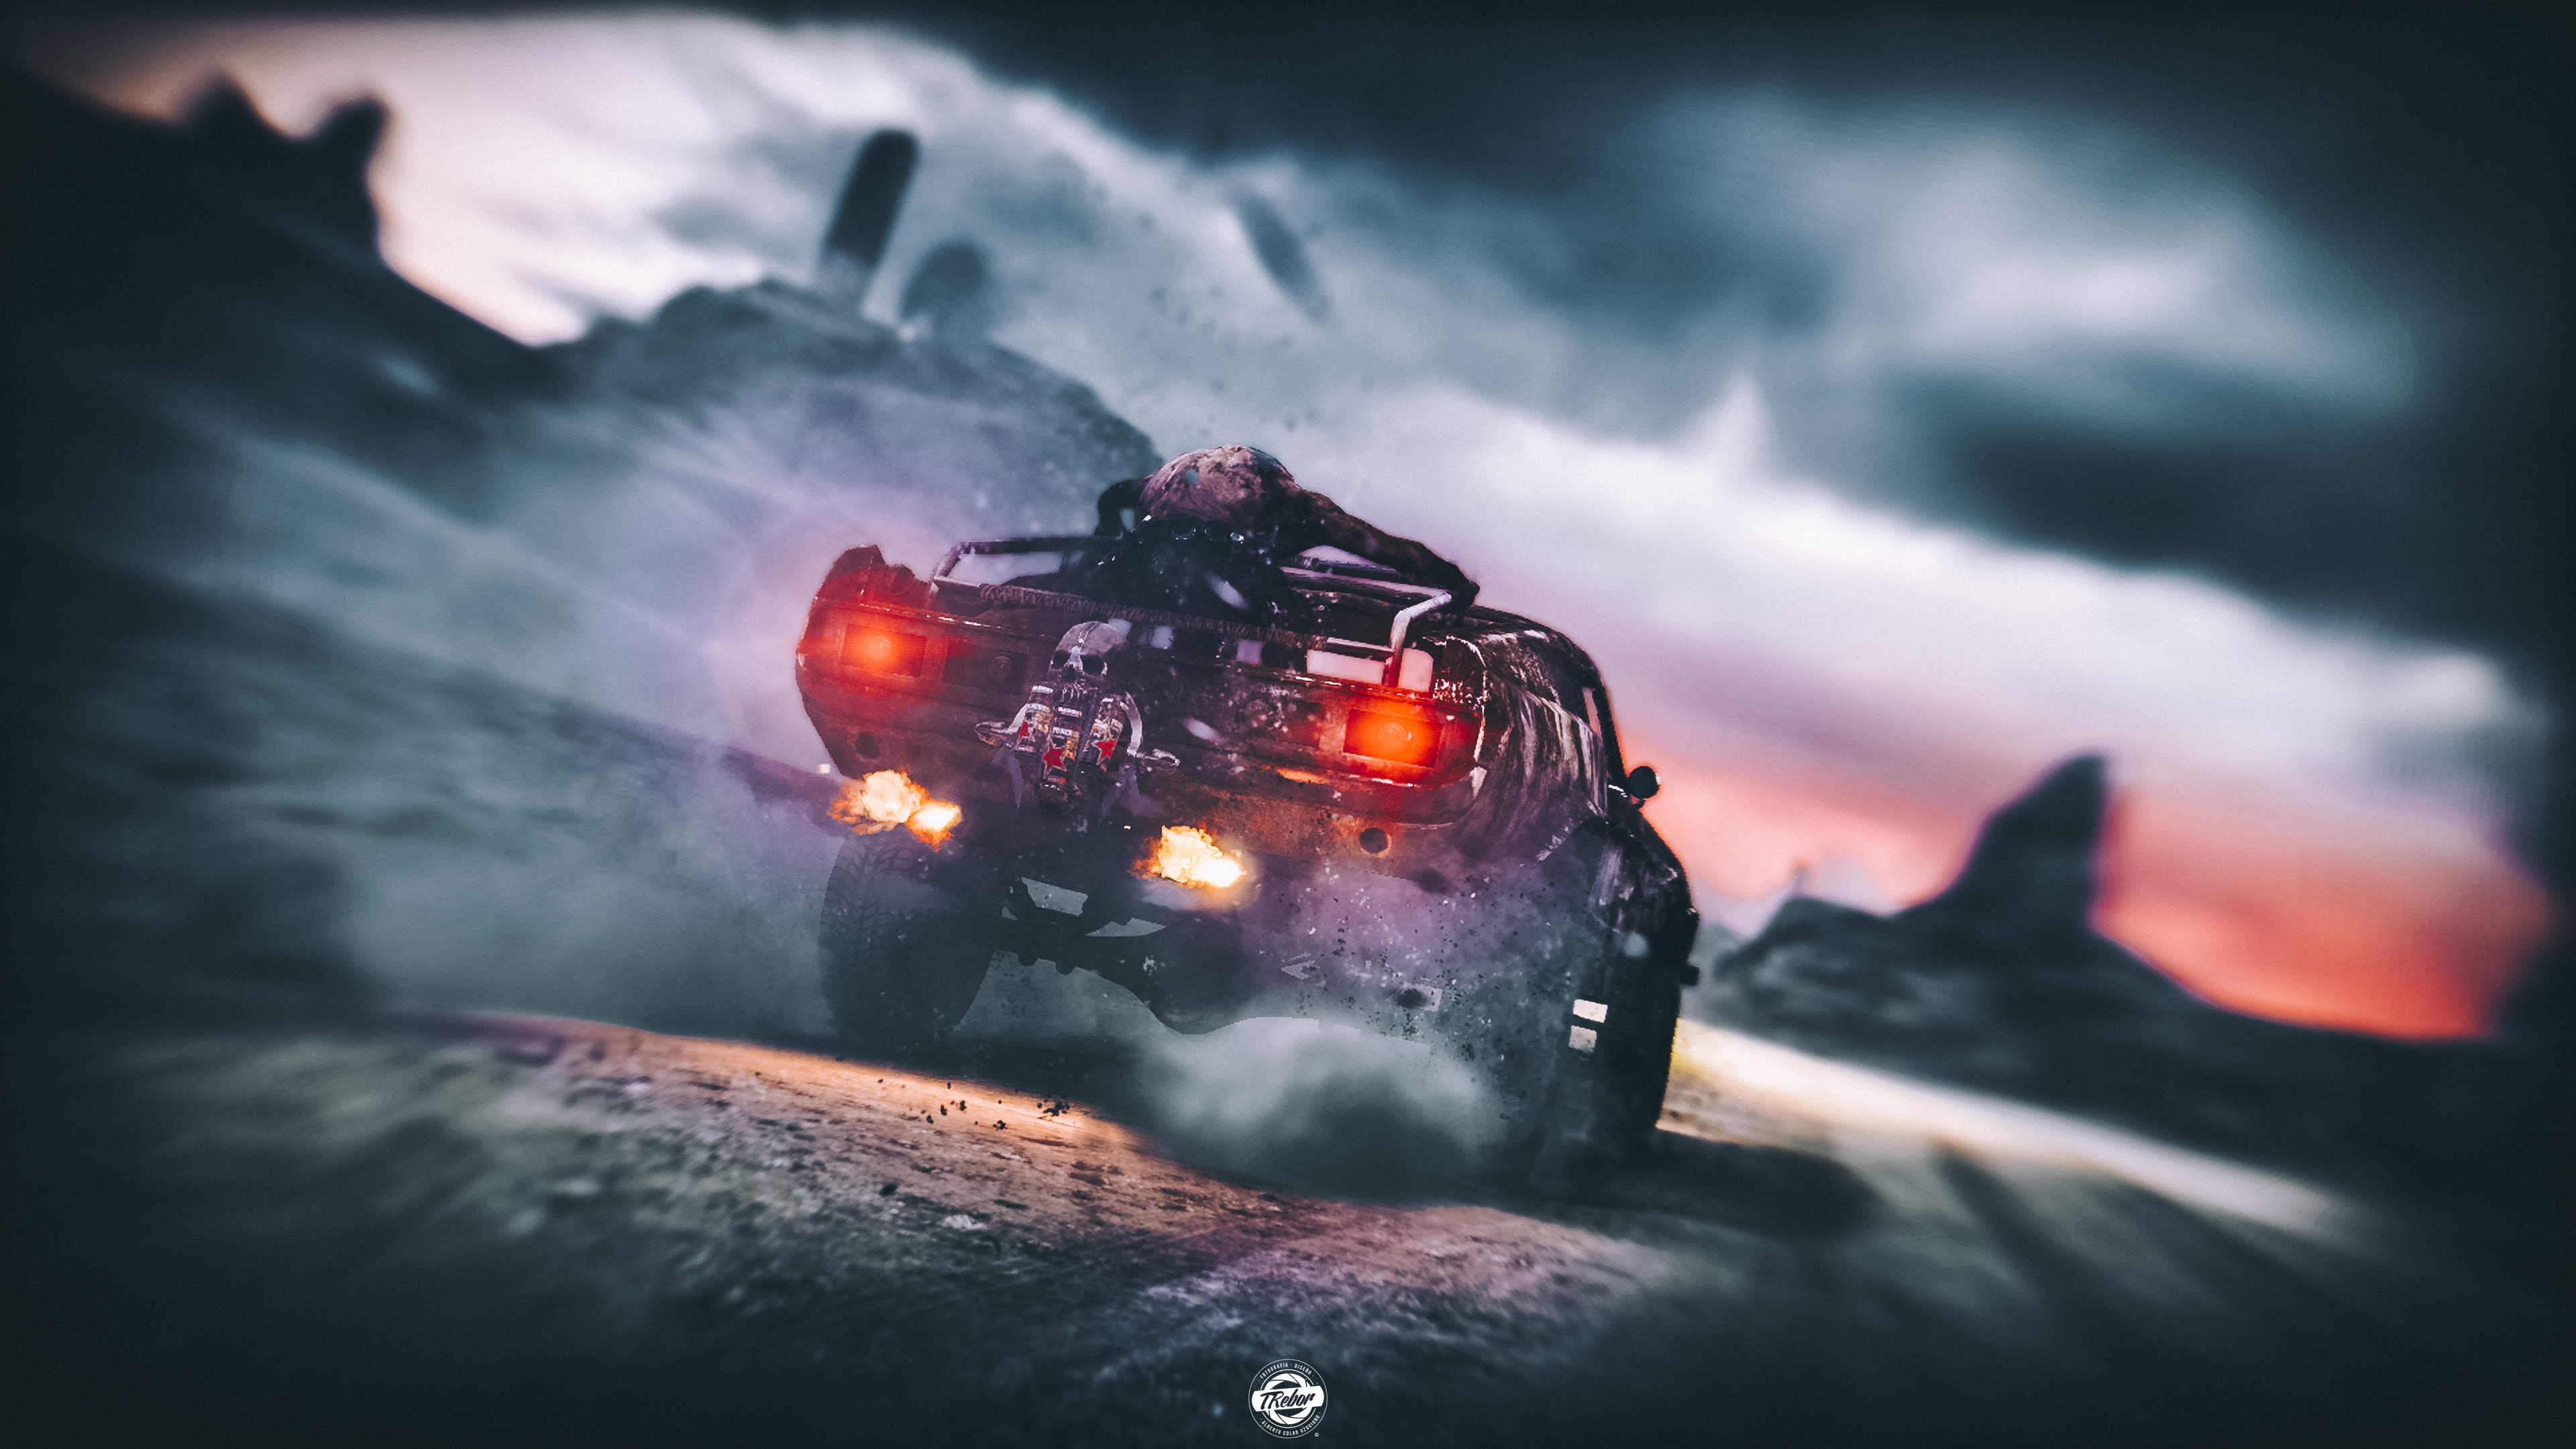 mad max game 4k 1537691719 - Mad Max Game 4k - mad max wallpapers, hd-wallpapers, games wallpapers, 4k-wallpapers